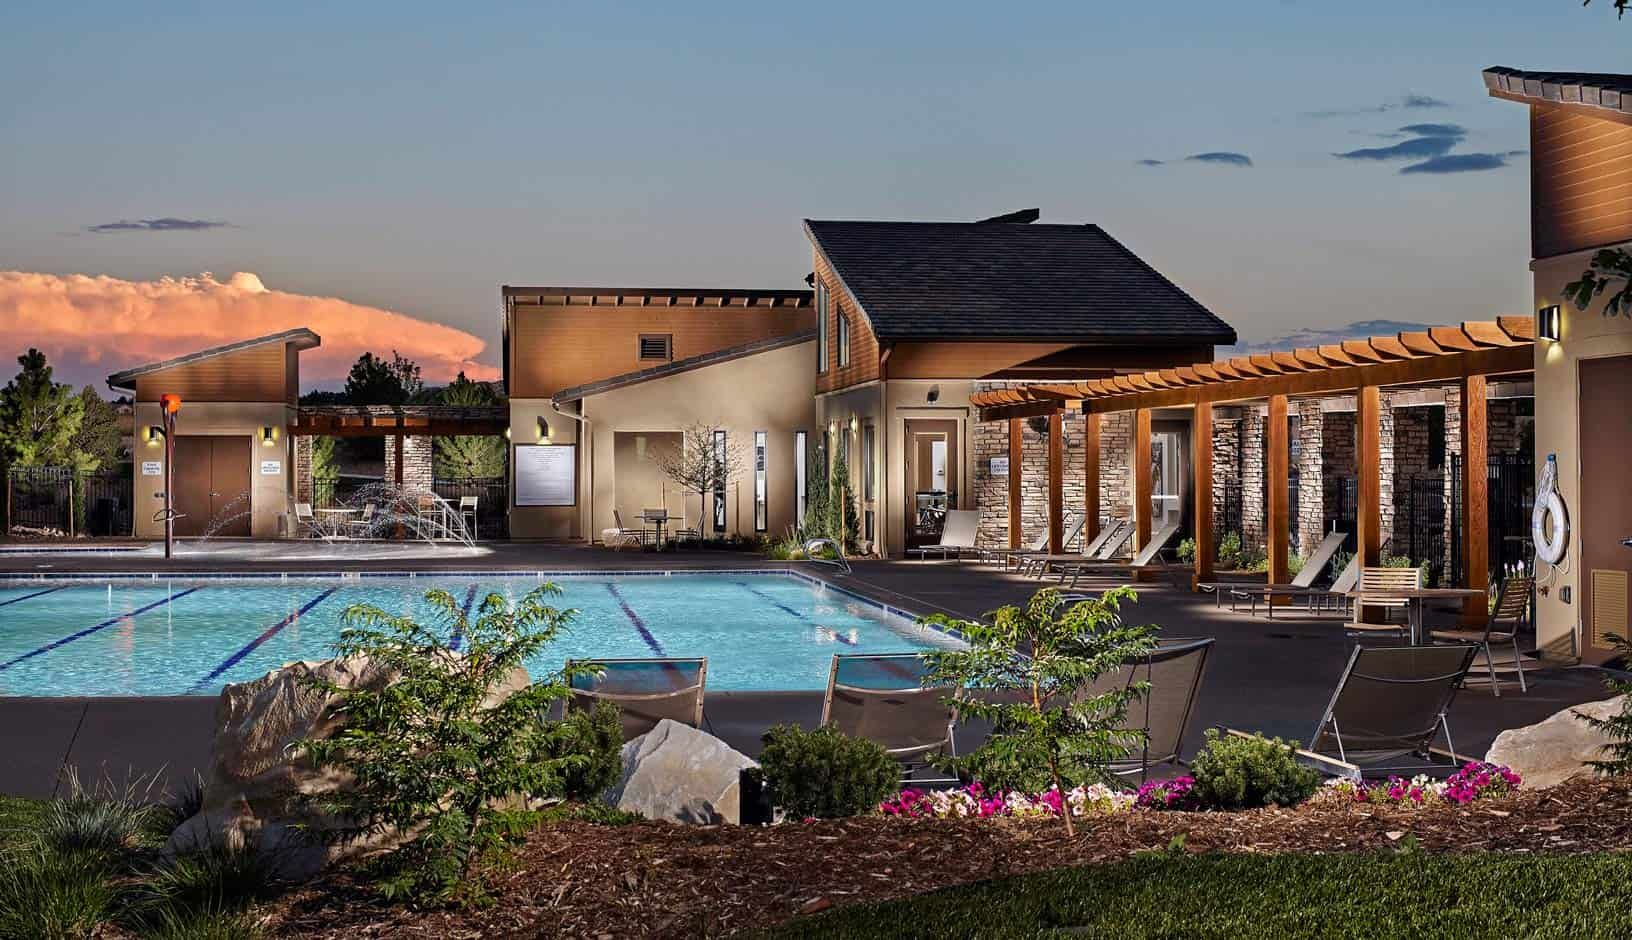 TPH-neighborhood-Rear-Ext-Close-web-size:Terrain Swim and Fitness Club - Pool